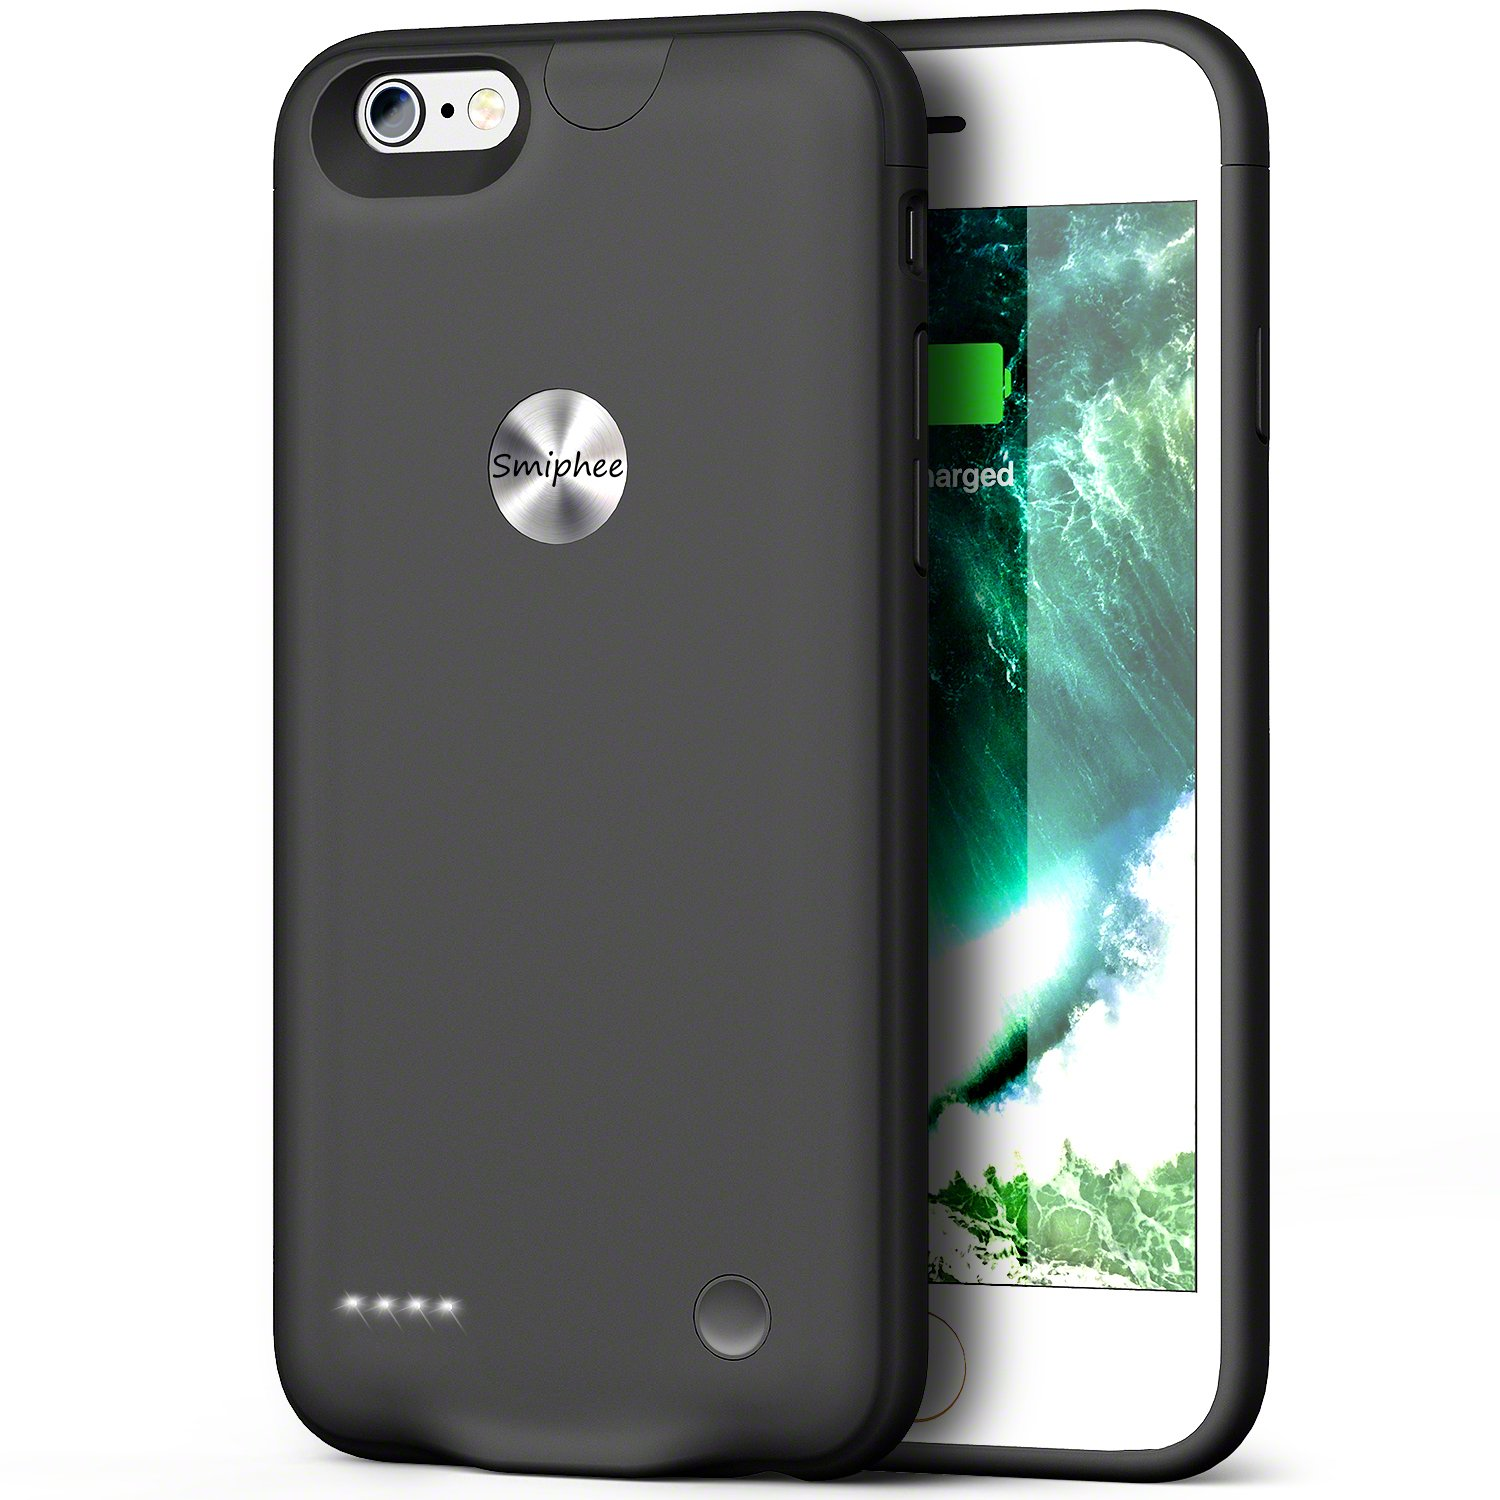 iPhone 6 6s Battery Case,Smiphee 2500mAh Portable Charging Case for iPhone 6 6s(4.7 inch) Extended Battery Charger Case/Lightning Cable Input Mode-(Black) by Smiphee (Image #1)